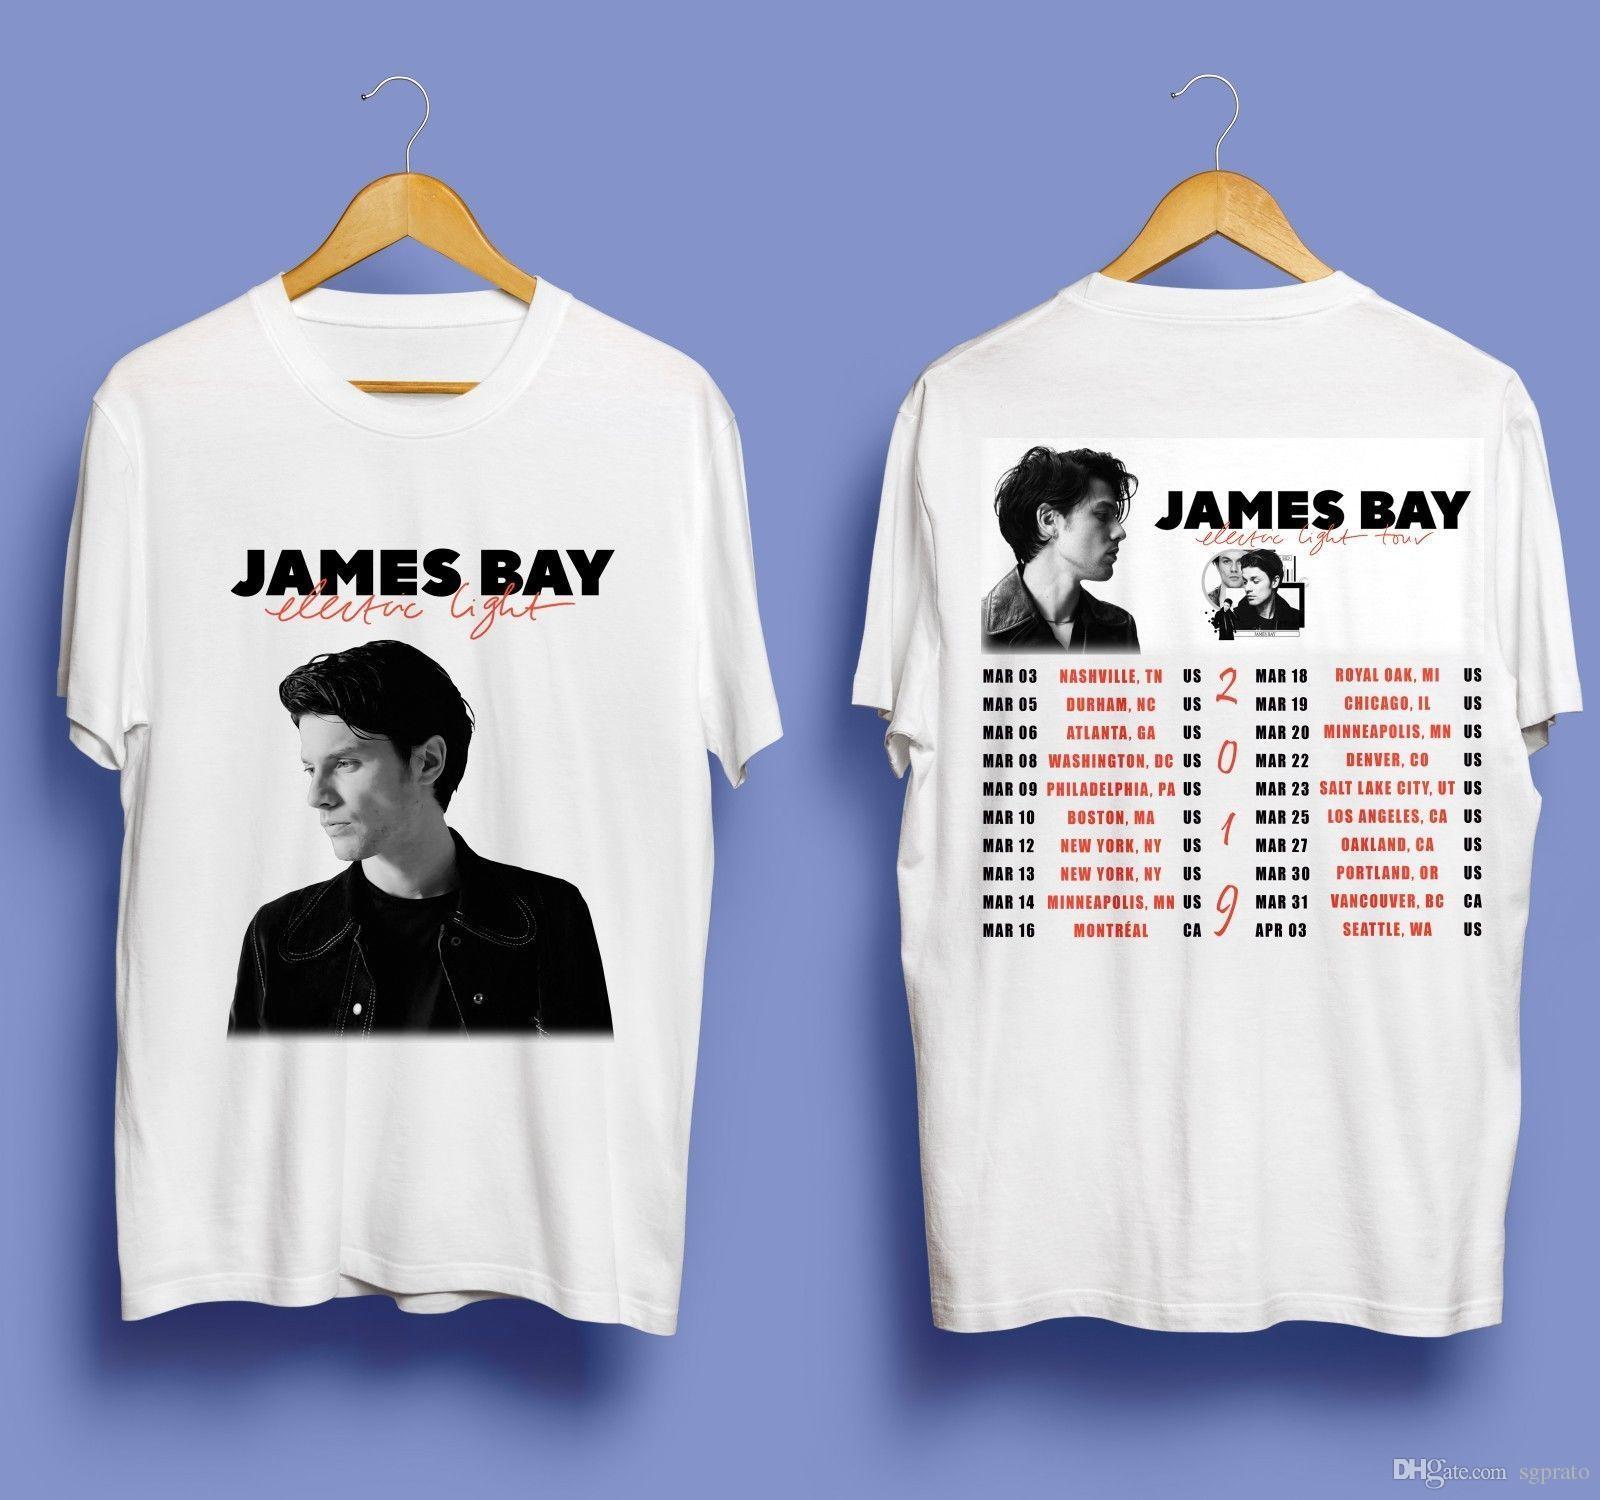 e605729e875cd New James Bay Electric Light Tour 2019 Top Tee White T Shirt It T Shirt  Design Clever Tee Shirts From Sgprato